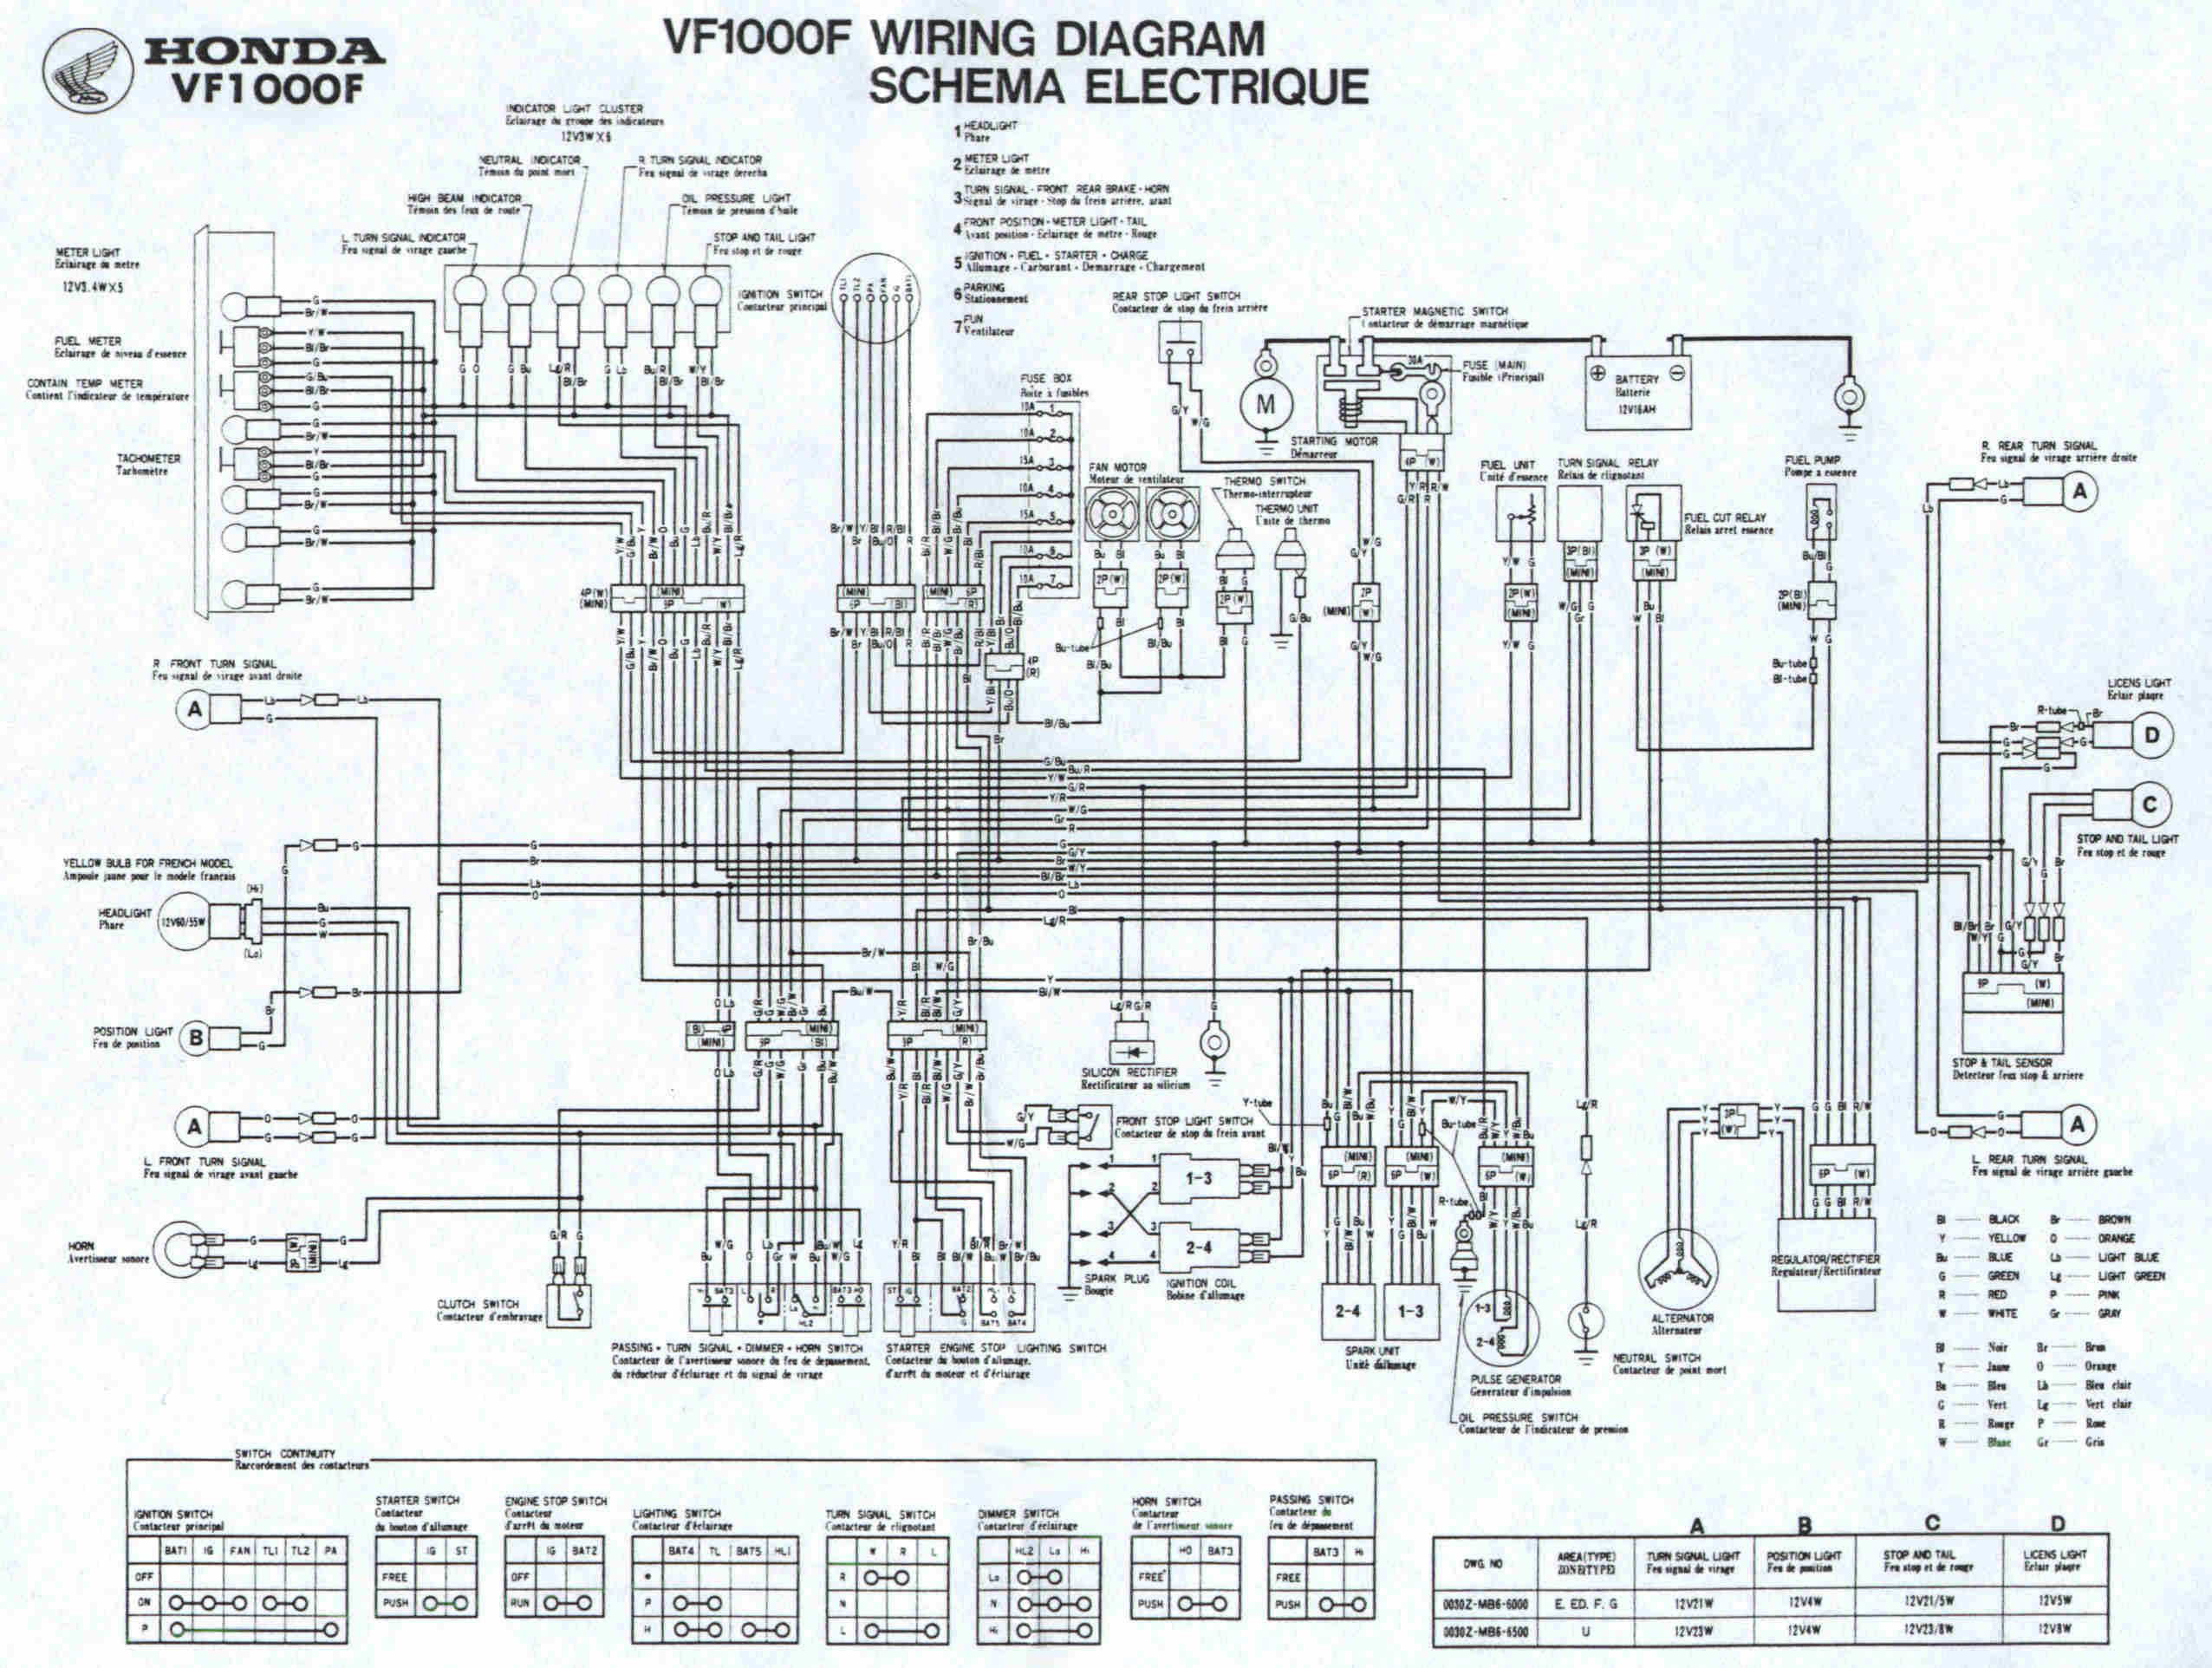 DIAGRAM] Pontiac Montana Questions Wiring Diagram FULL Version HD Quality Wiring  Diagram - BANGKOKIPHONE.GRANVILLE-NATATION.FRbangkokiphone.granville-natation.fr